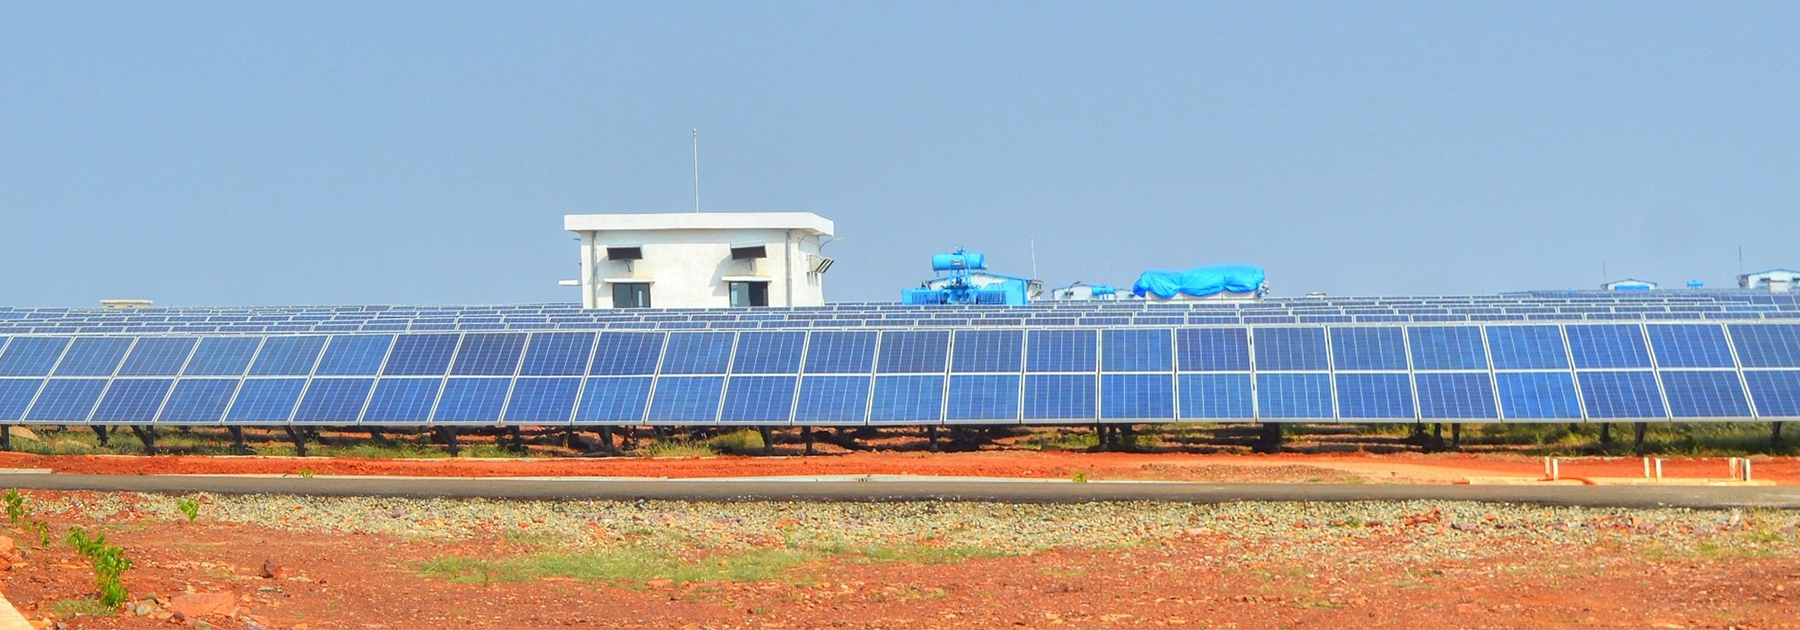 The Welspun Solar power plant outside of Bhagwanpura villiage, Neemuch. (Rahul Talreja, licensed under CC BY-SA 4.0)